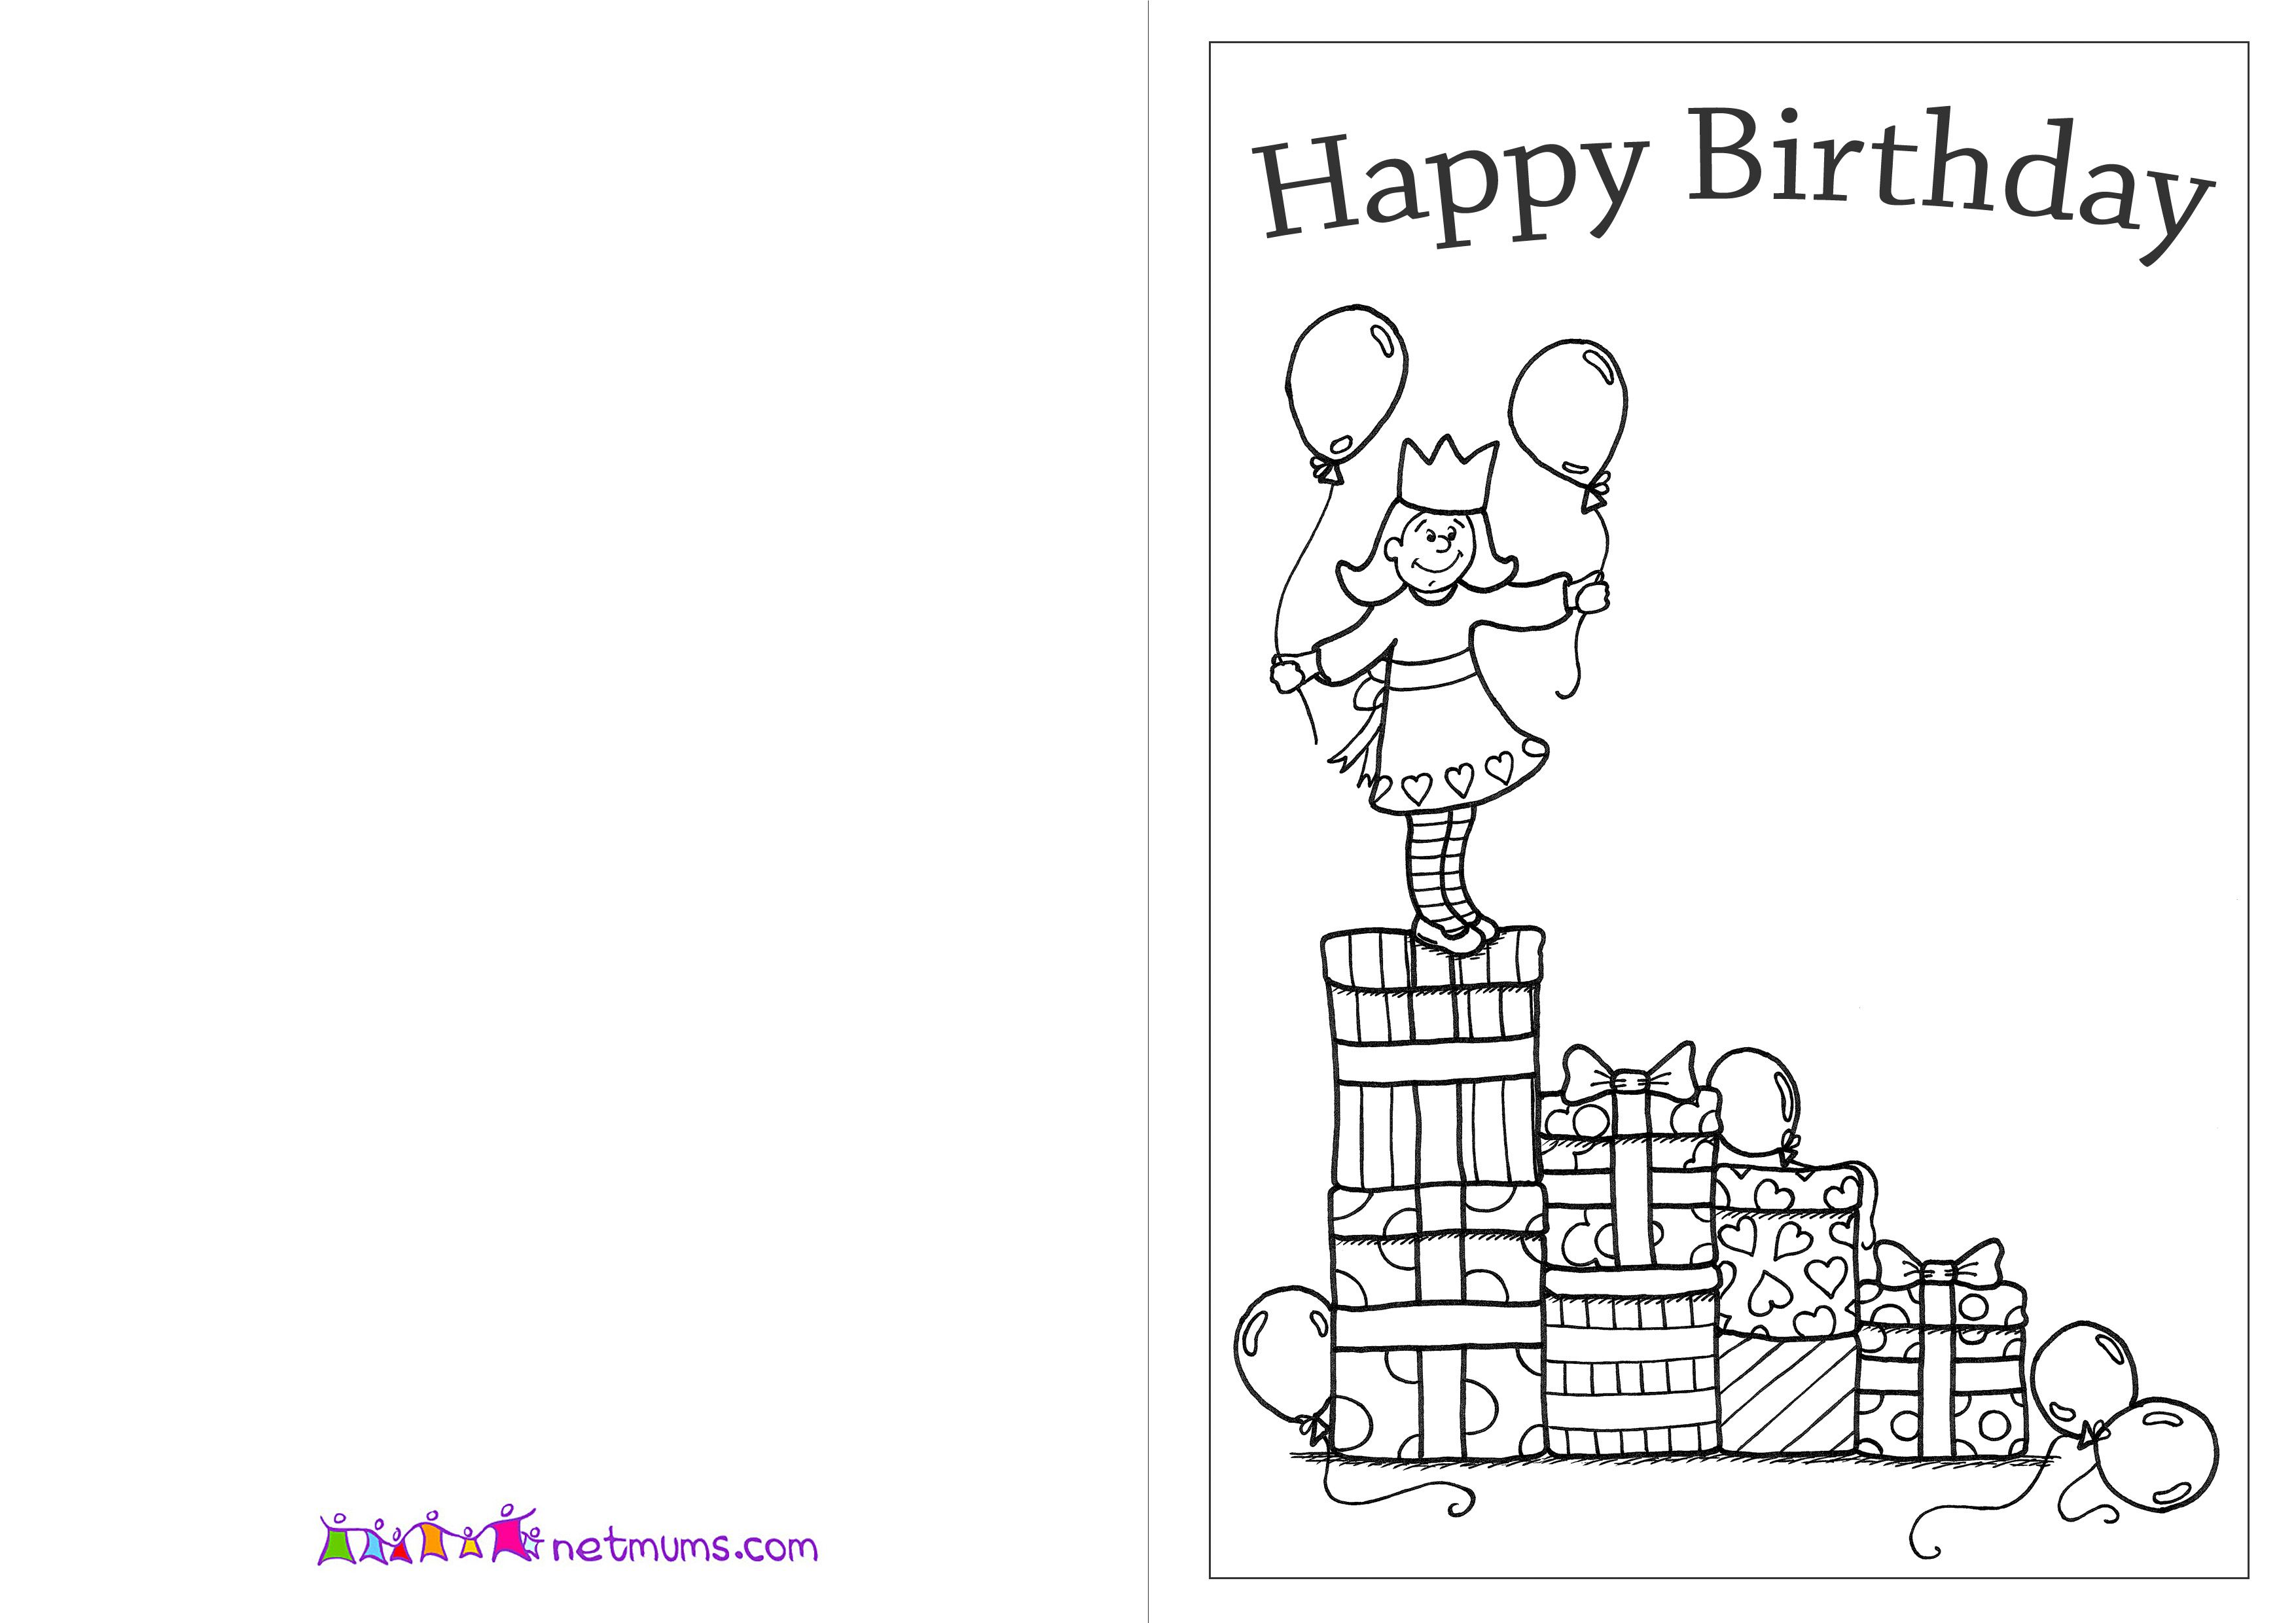 happy birthday cards to color and print ; 27bfd05c7e230001589a76fe681f57a0